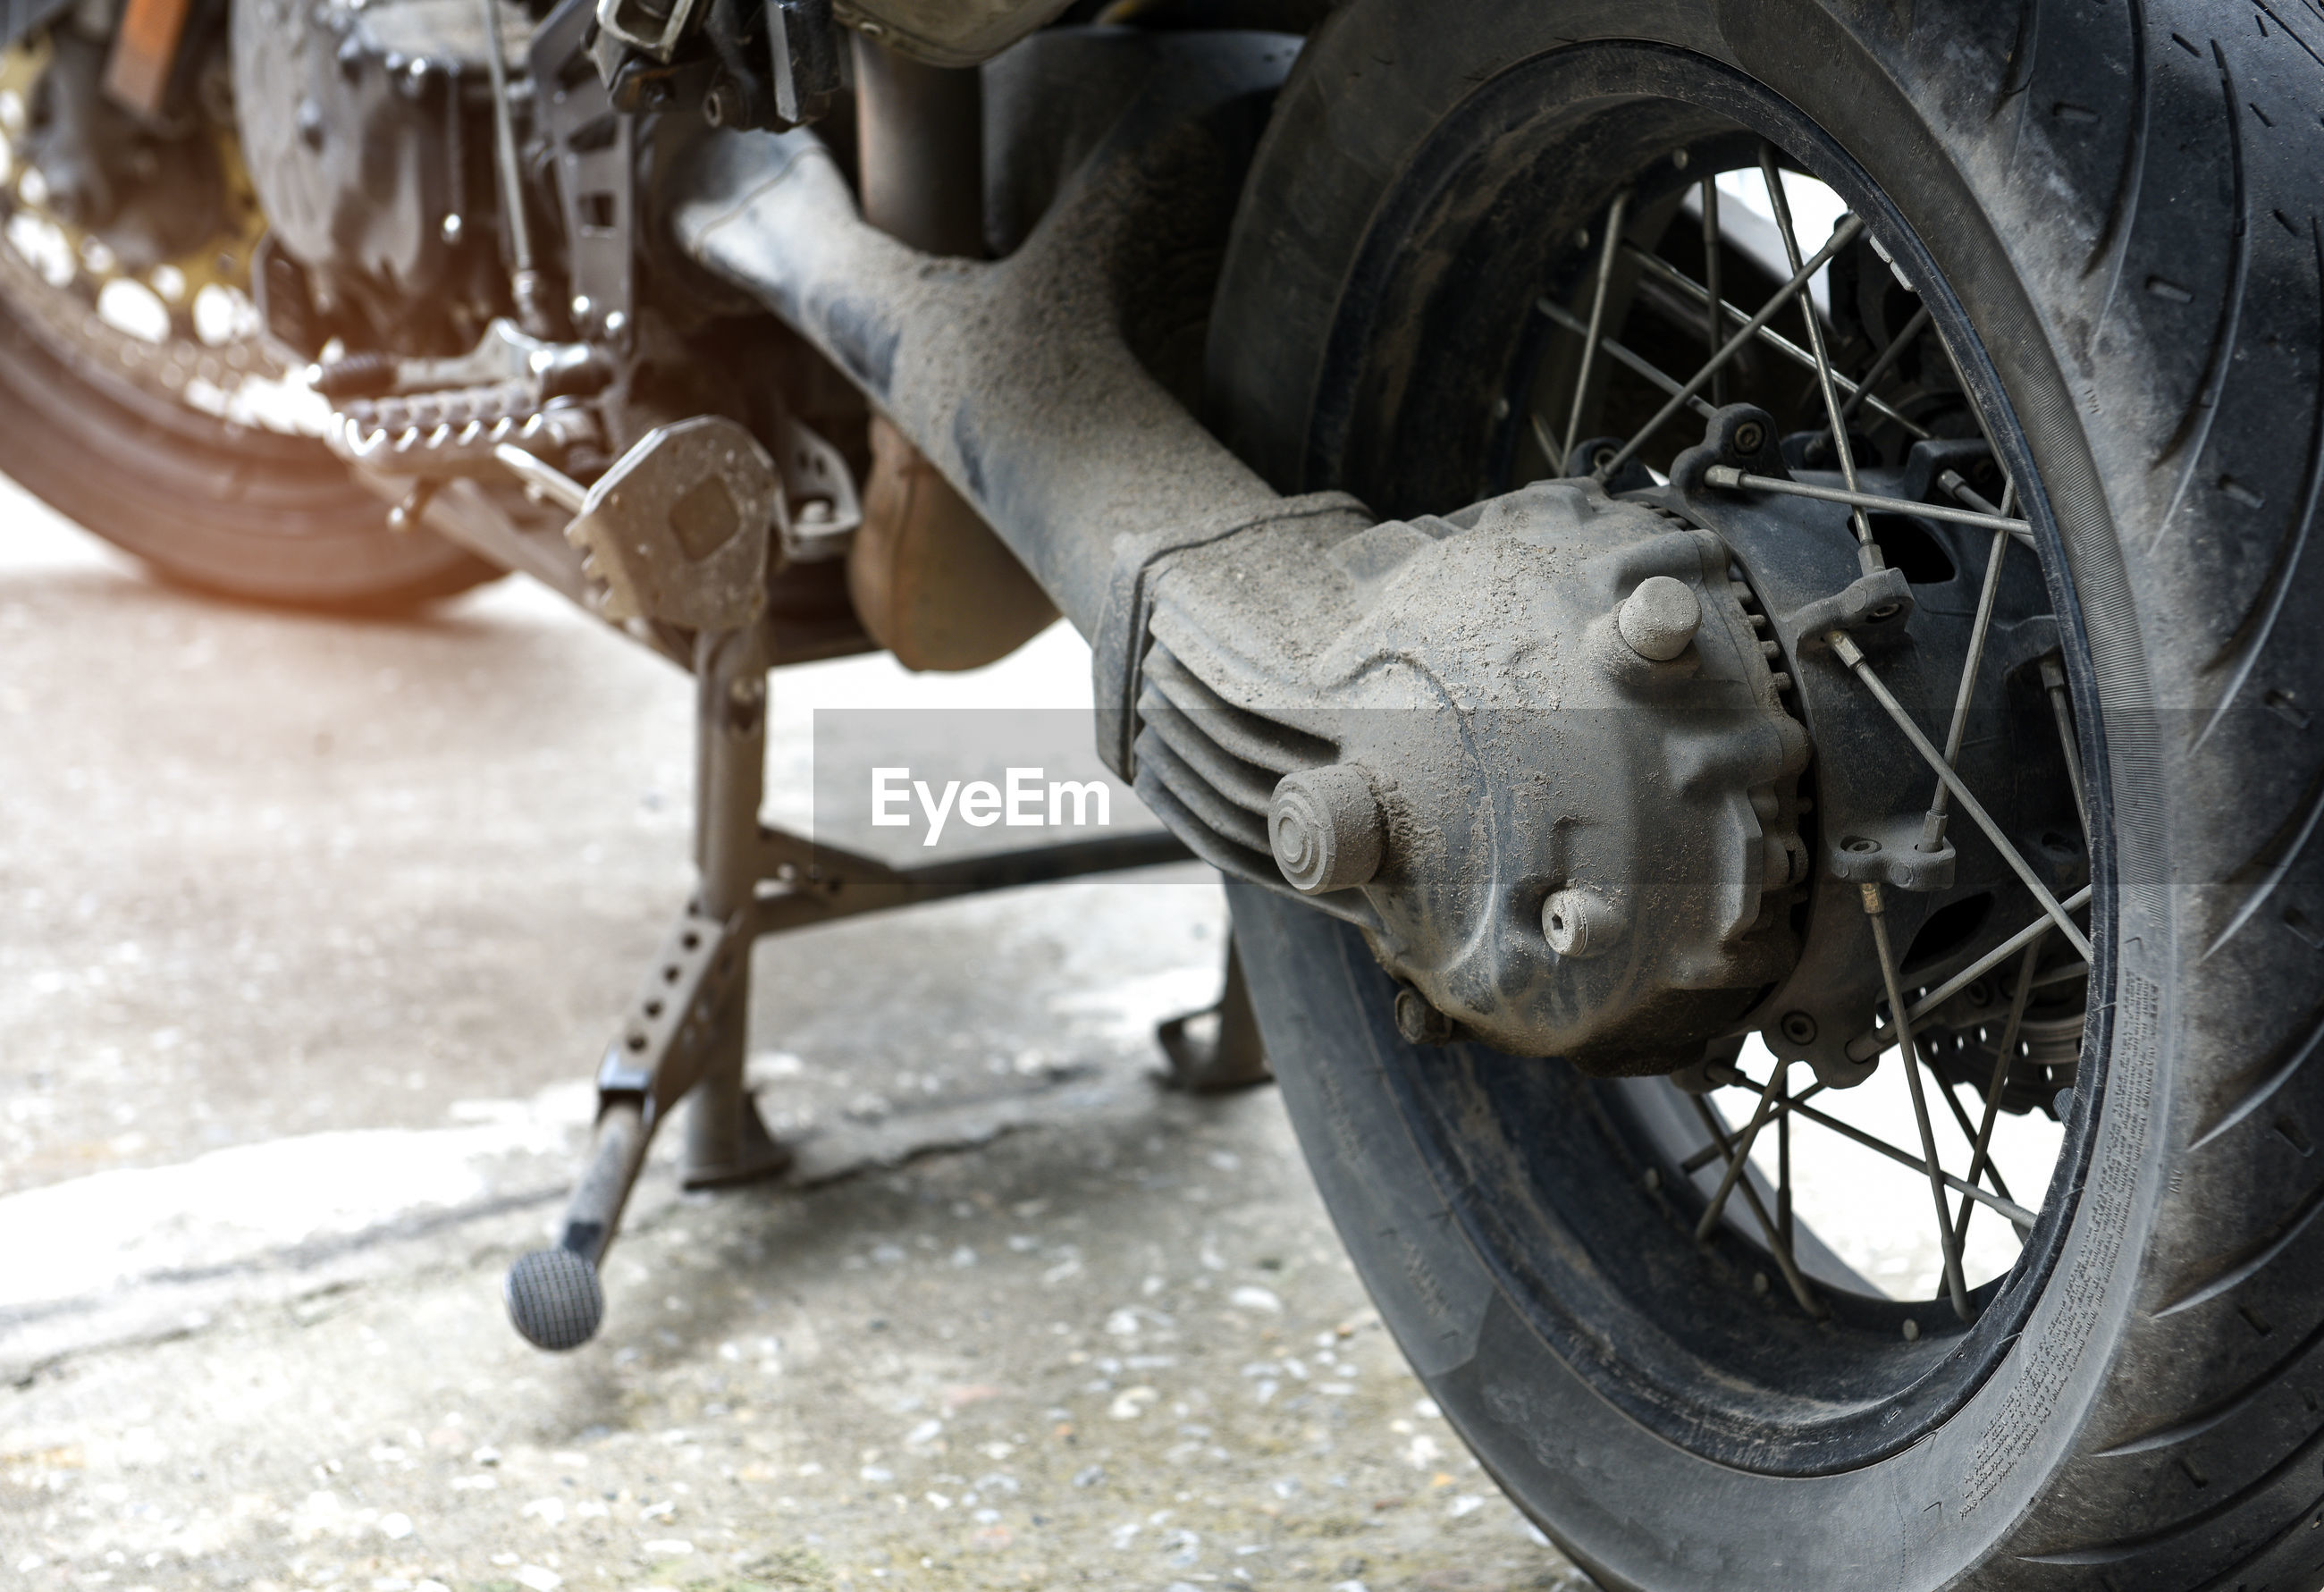 Close-up of motorcycle on road